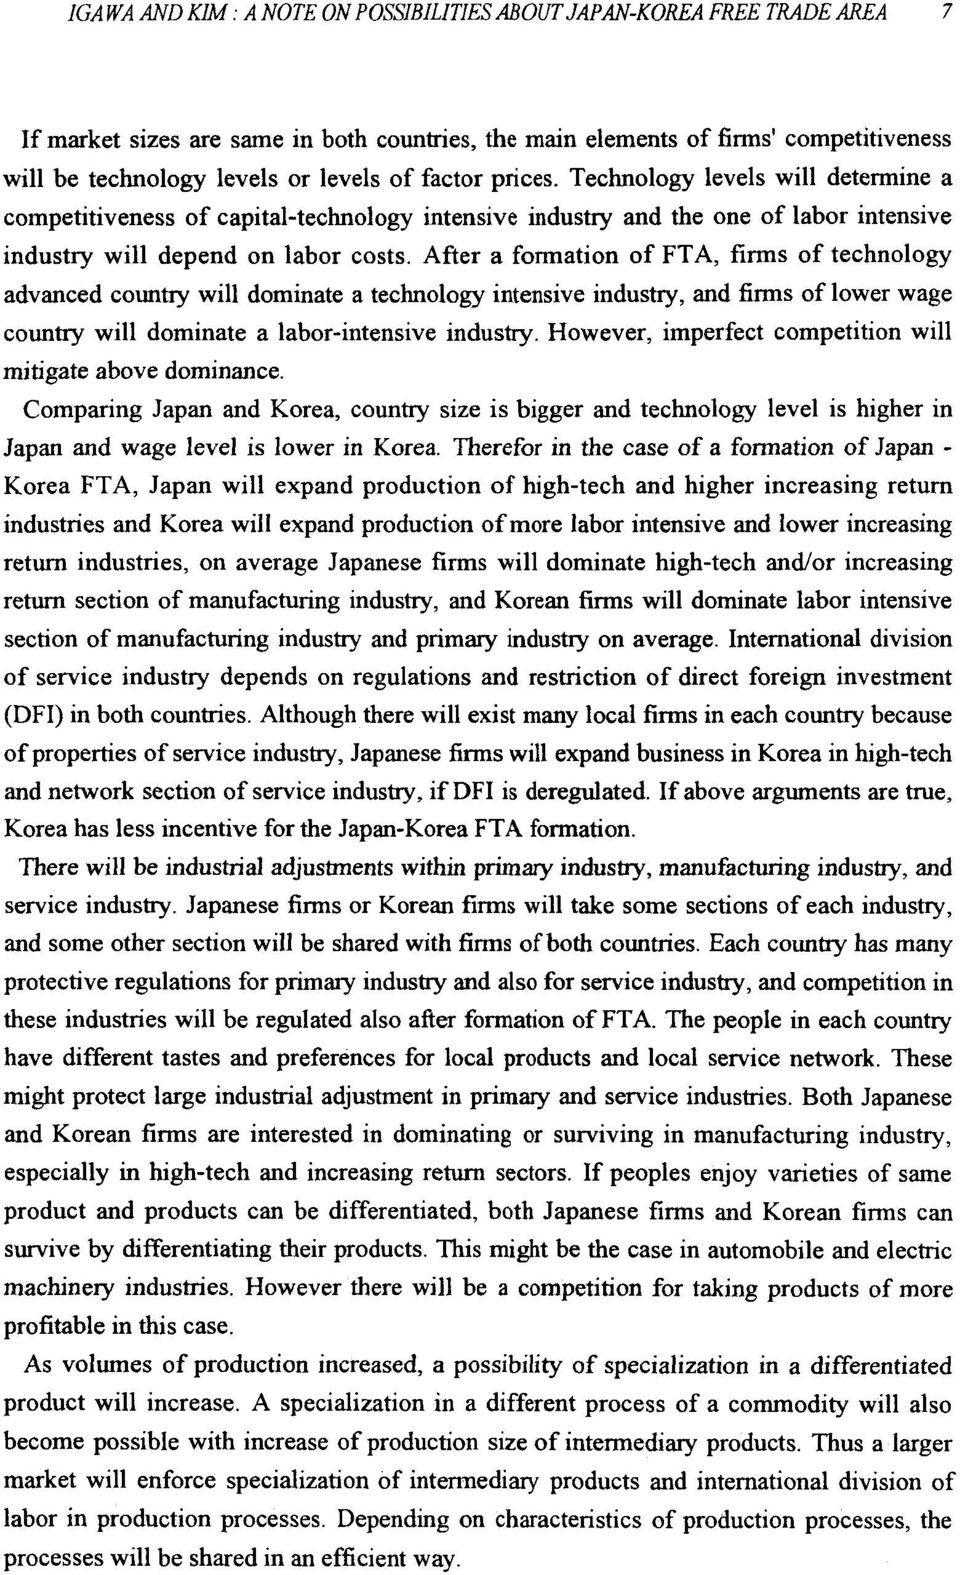 After a formation of FTA, firms of technology advanced country will dominate a technology intensive industry, and firms of lower wage country will dominate a labor-intensive industry.